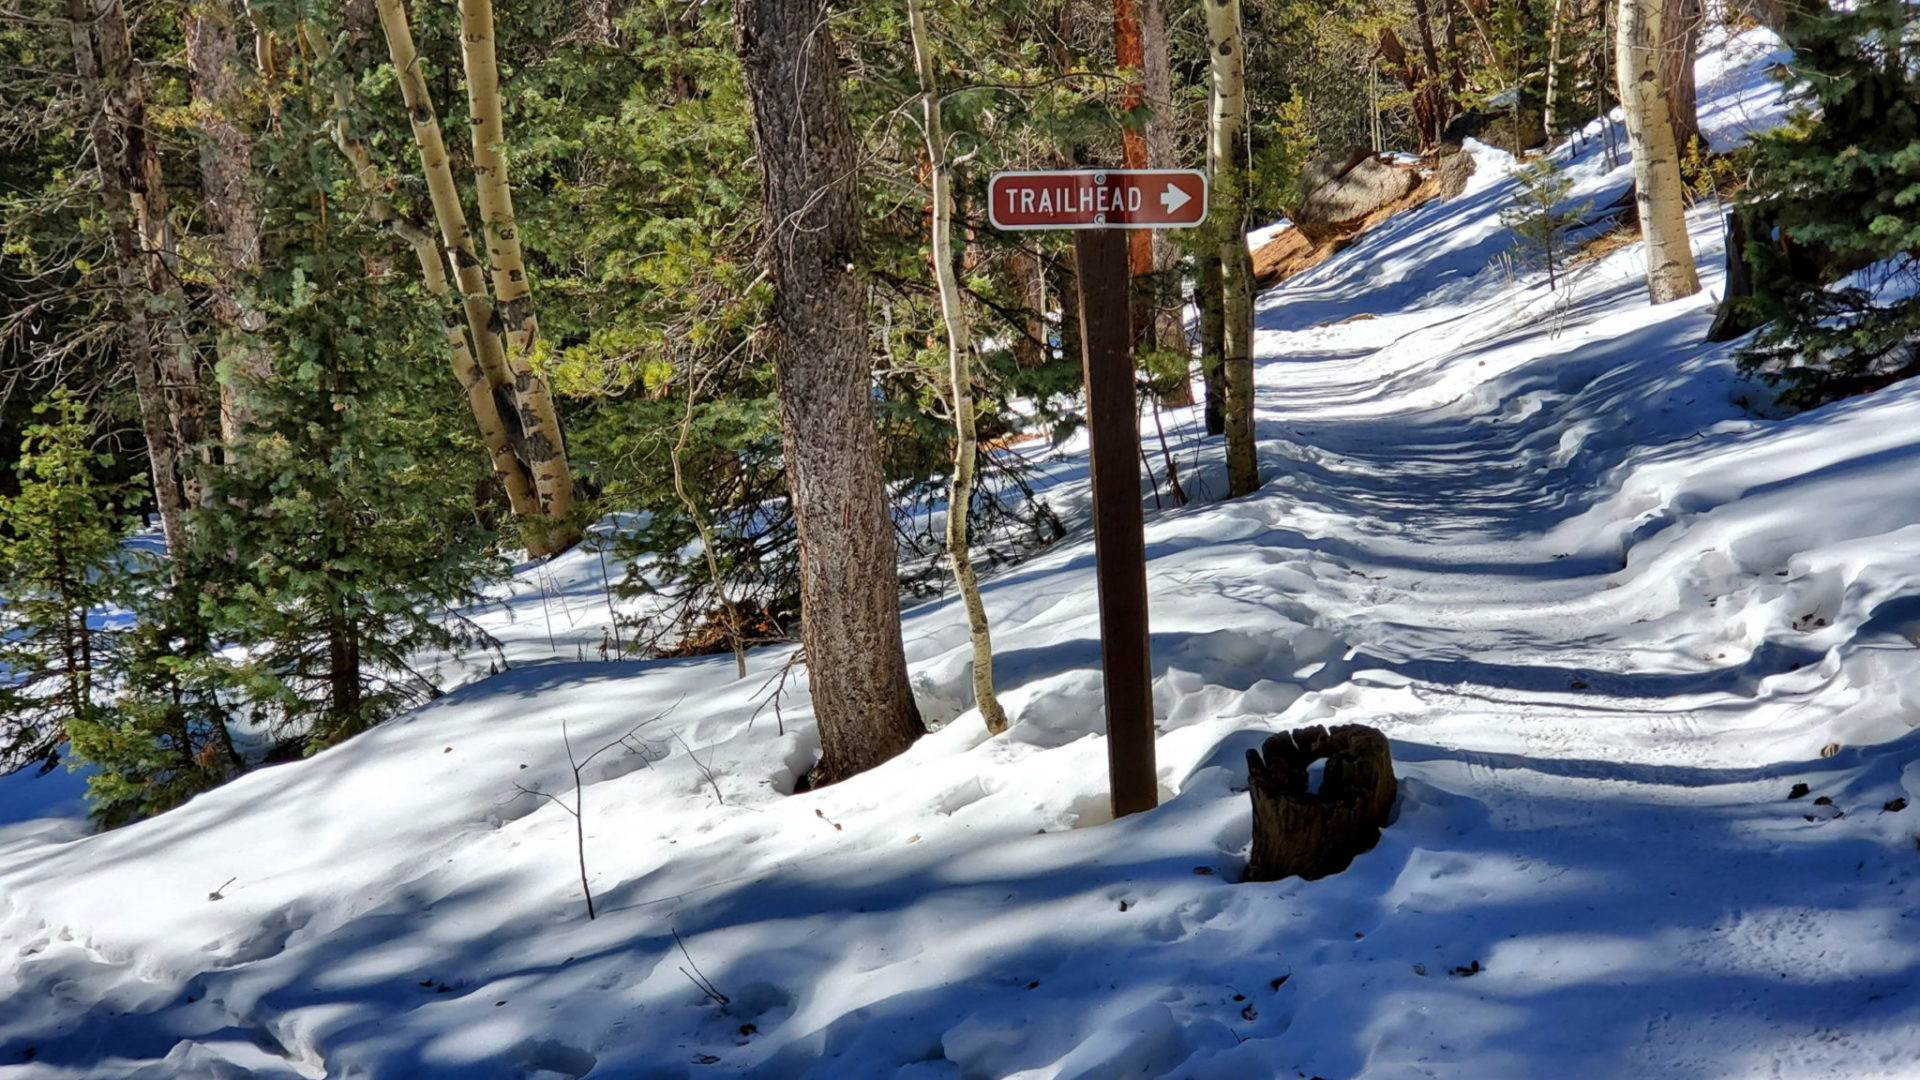 Stay to the right as you approach the trailhead